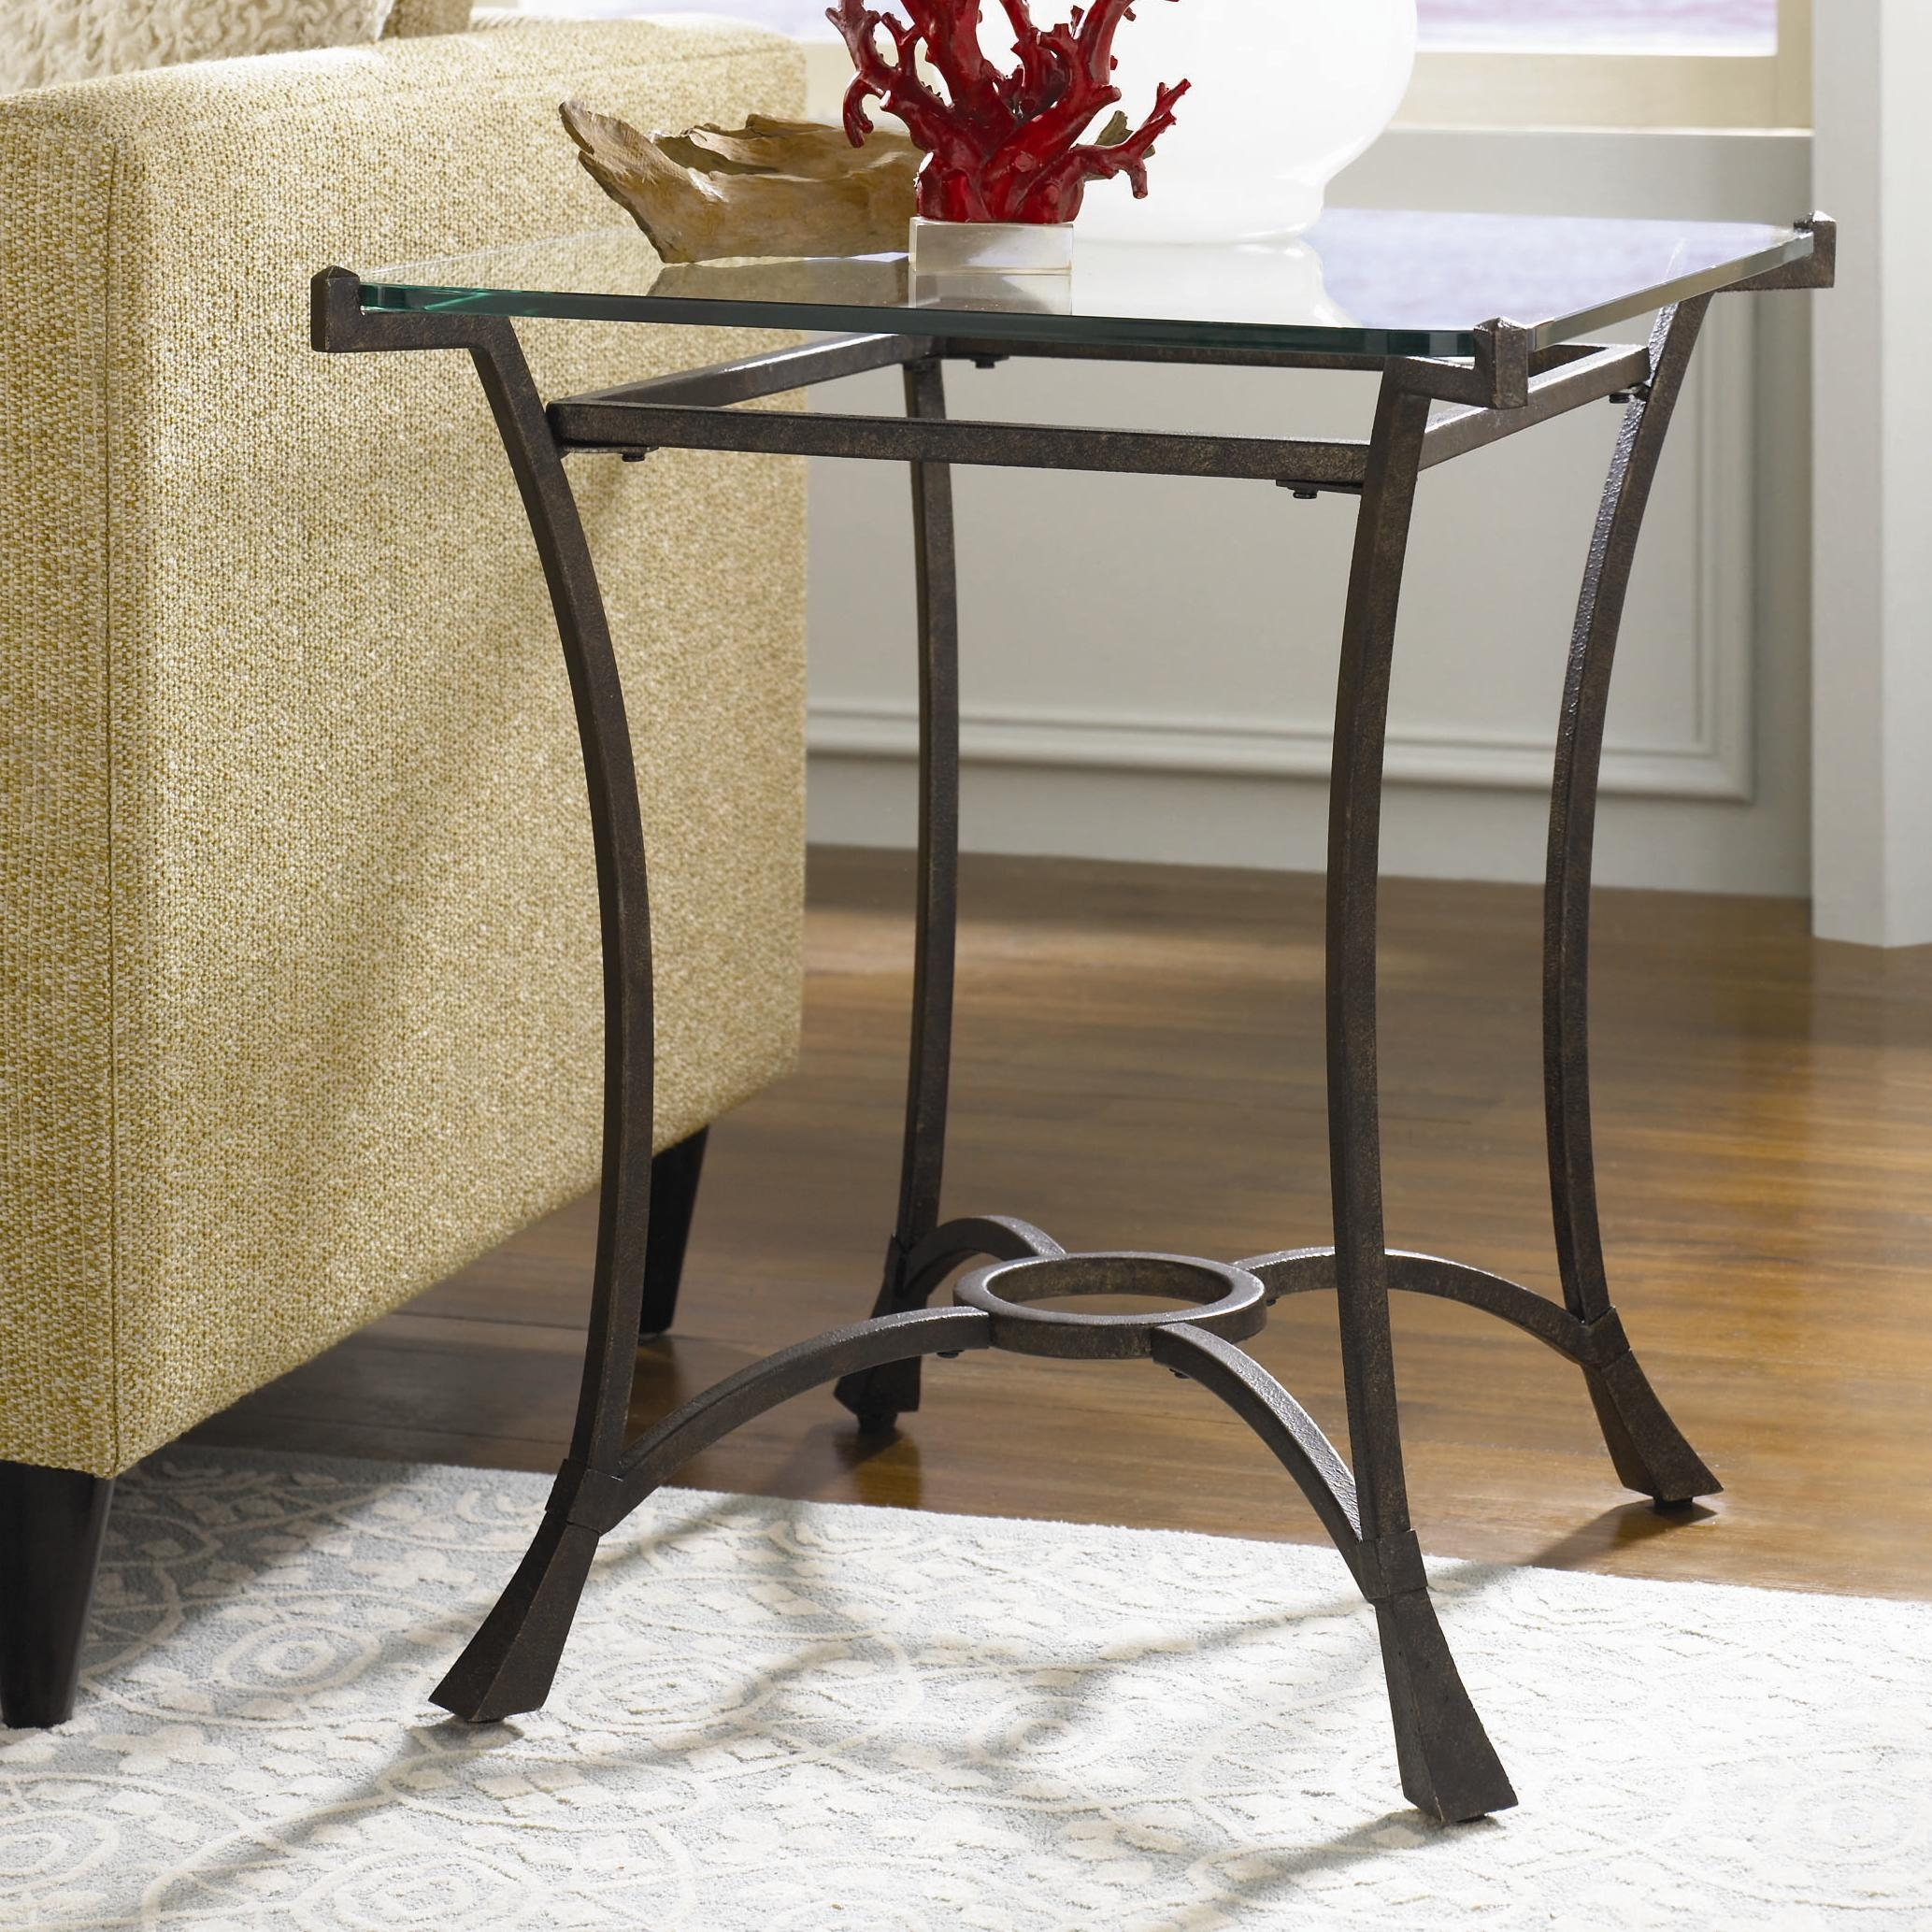 Contemporary Metal Rectangular End Table With Glass Tophammary Pertaining To Metal Glass Sofa Tables (Image 1 of 22)